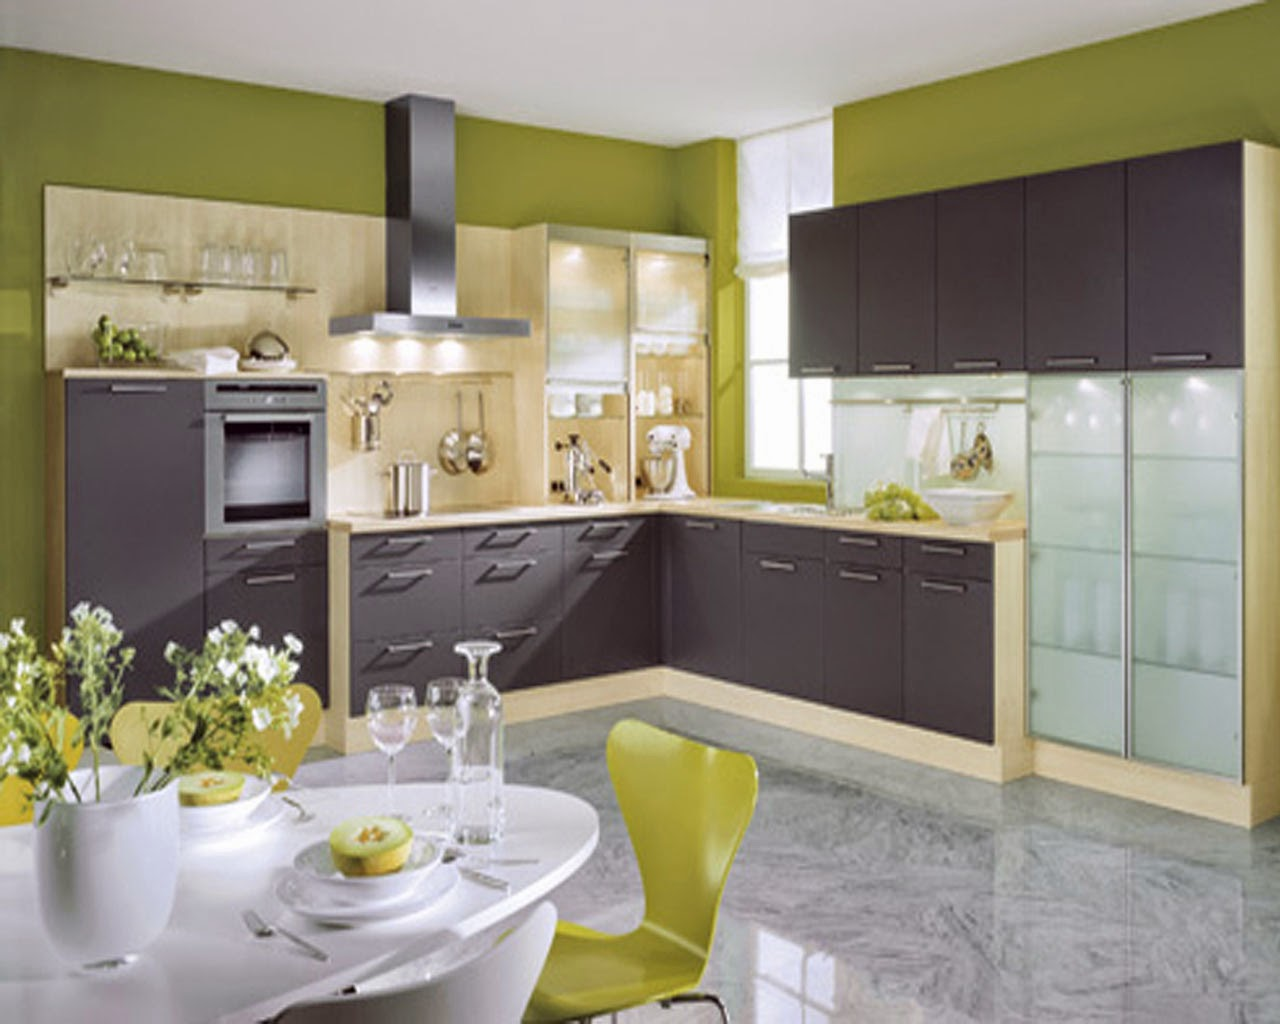 Kitchen Style Design Of Kitchen Designing Ideas 2014 Freshnist Design